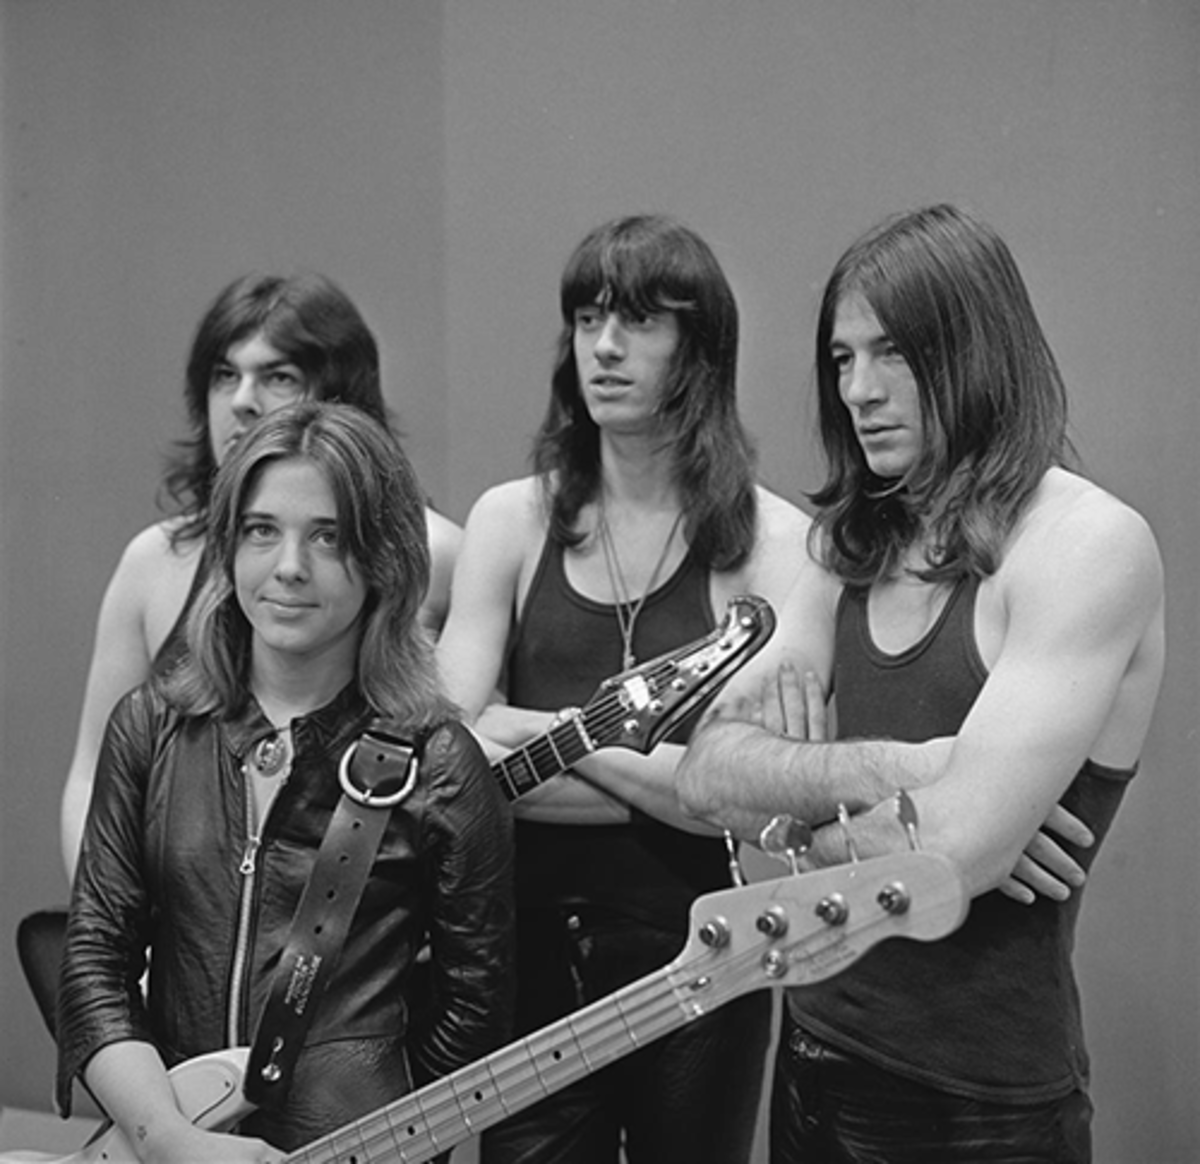 Suzi Quatro appearing with her backing band during a December 7th, 1973 appearance on the Dutch TV show TopPop.